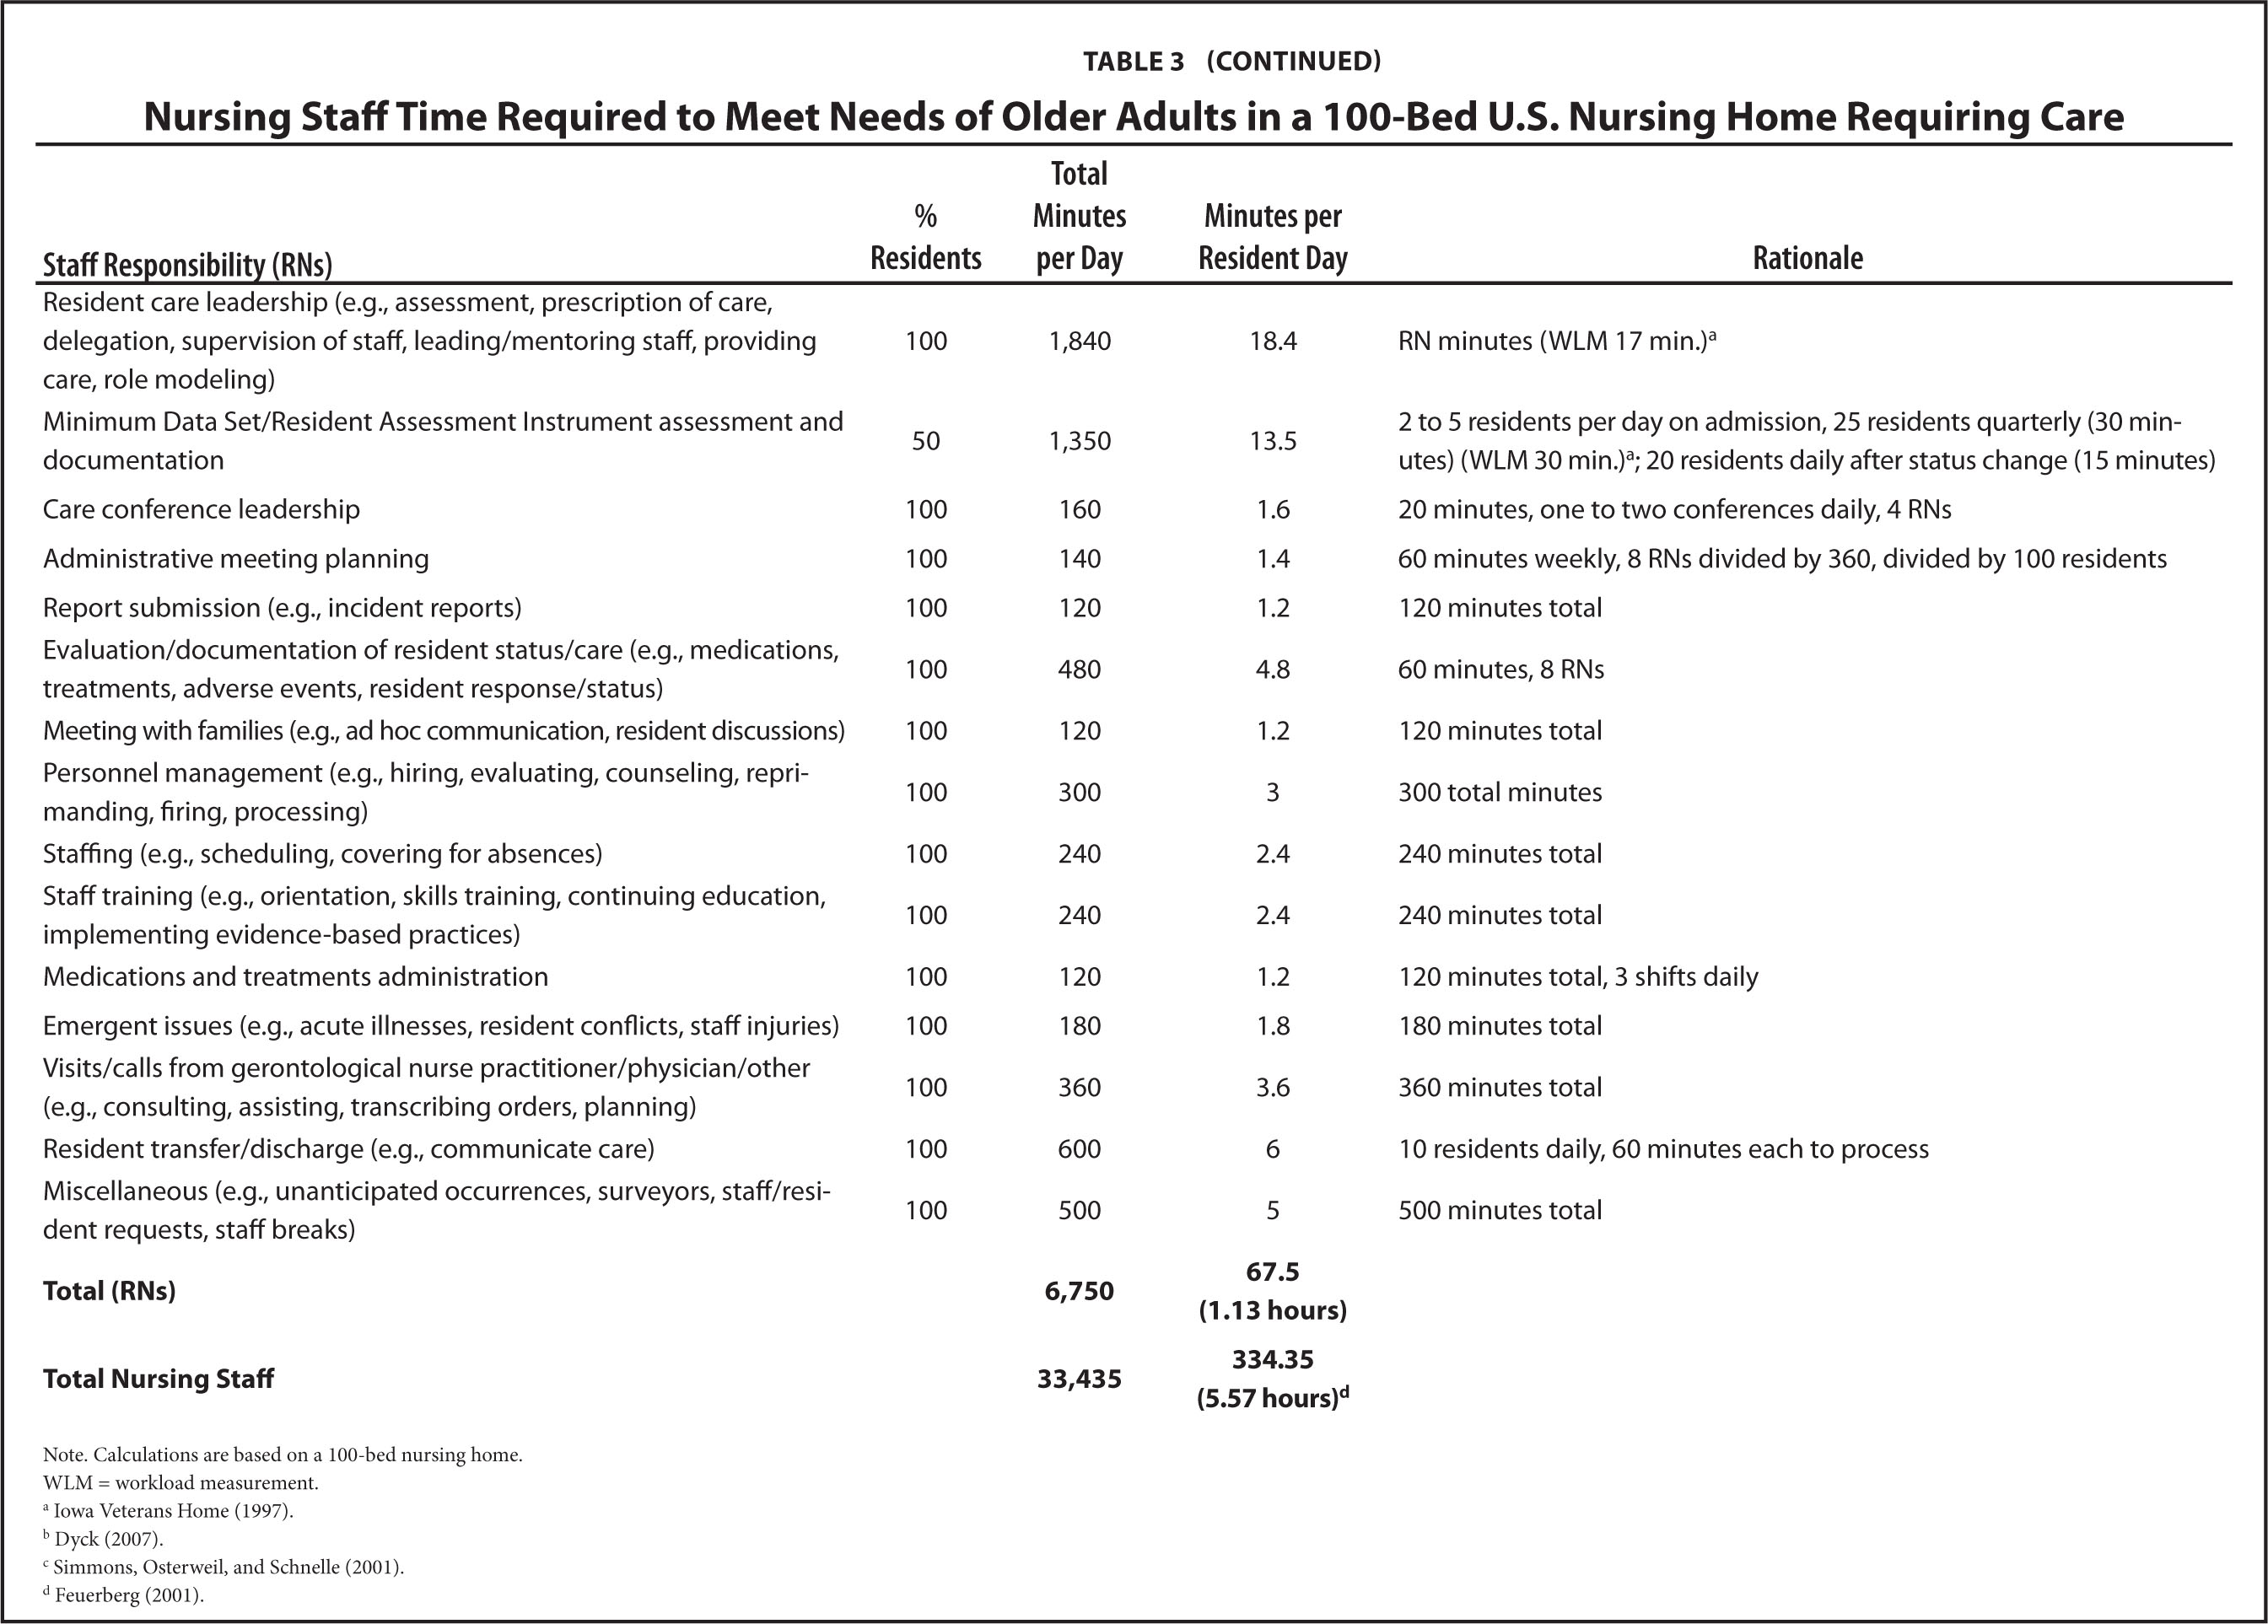 analysis hospital nurse staffing and quality Examining the value of inpatient nurse staffing: an assessment of quality and to assess the effect of nurse staffing on quality of care and inpatient longitudinal analysis using hospital nurse staffing data and the healthcare cost and utilization project state inpatient.